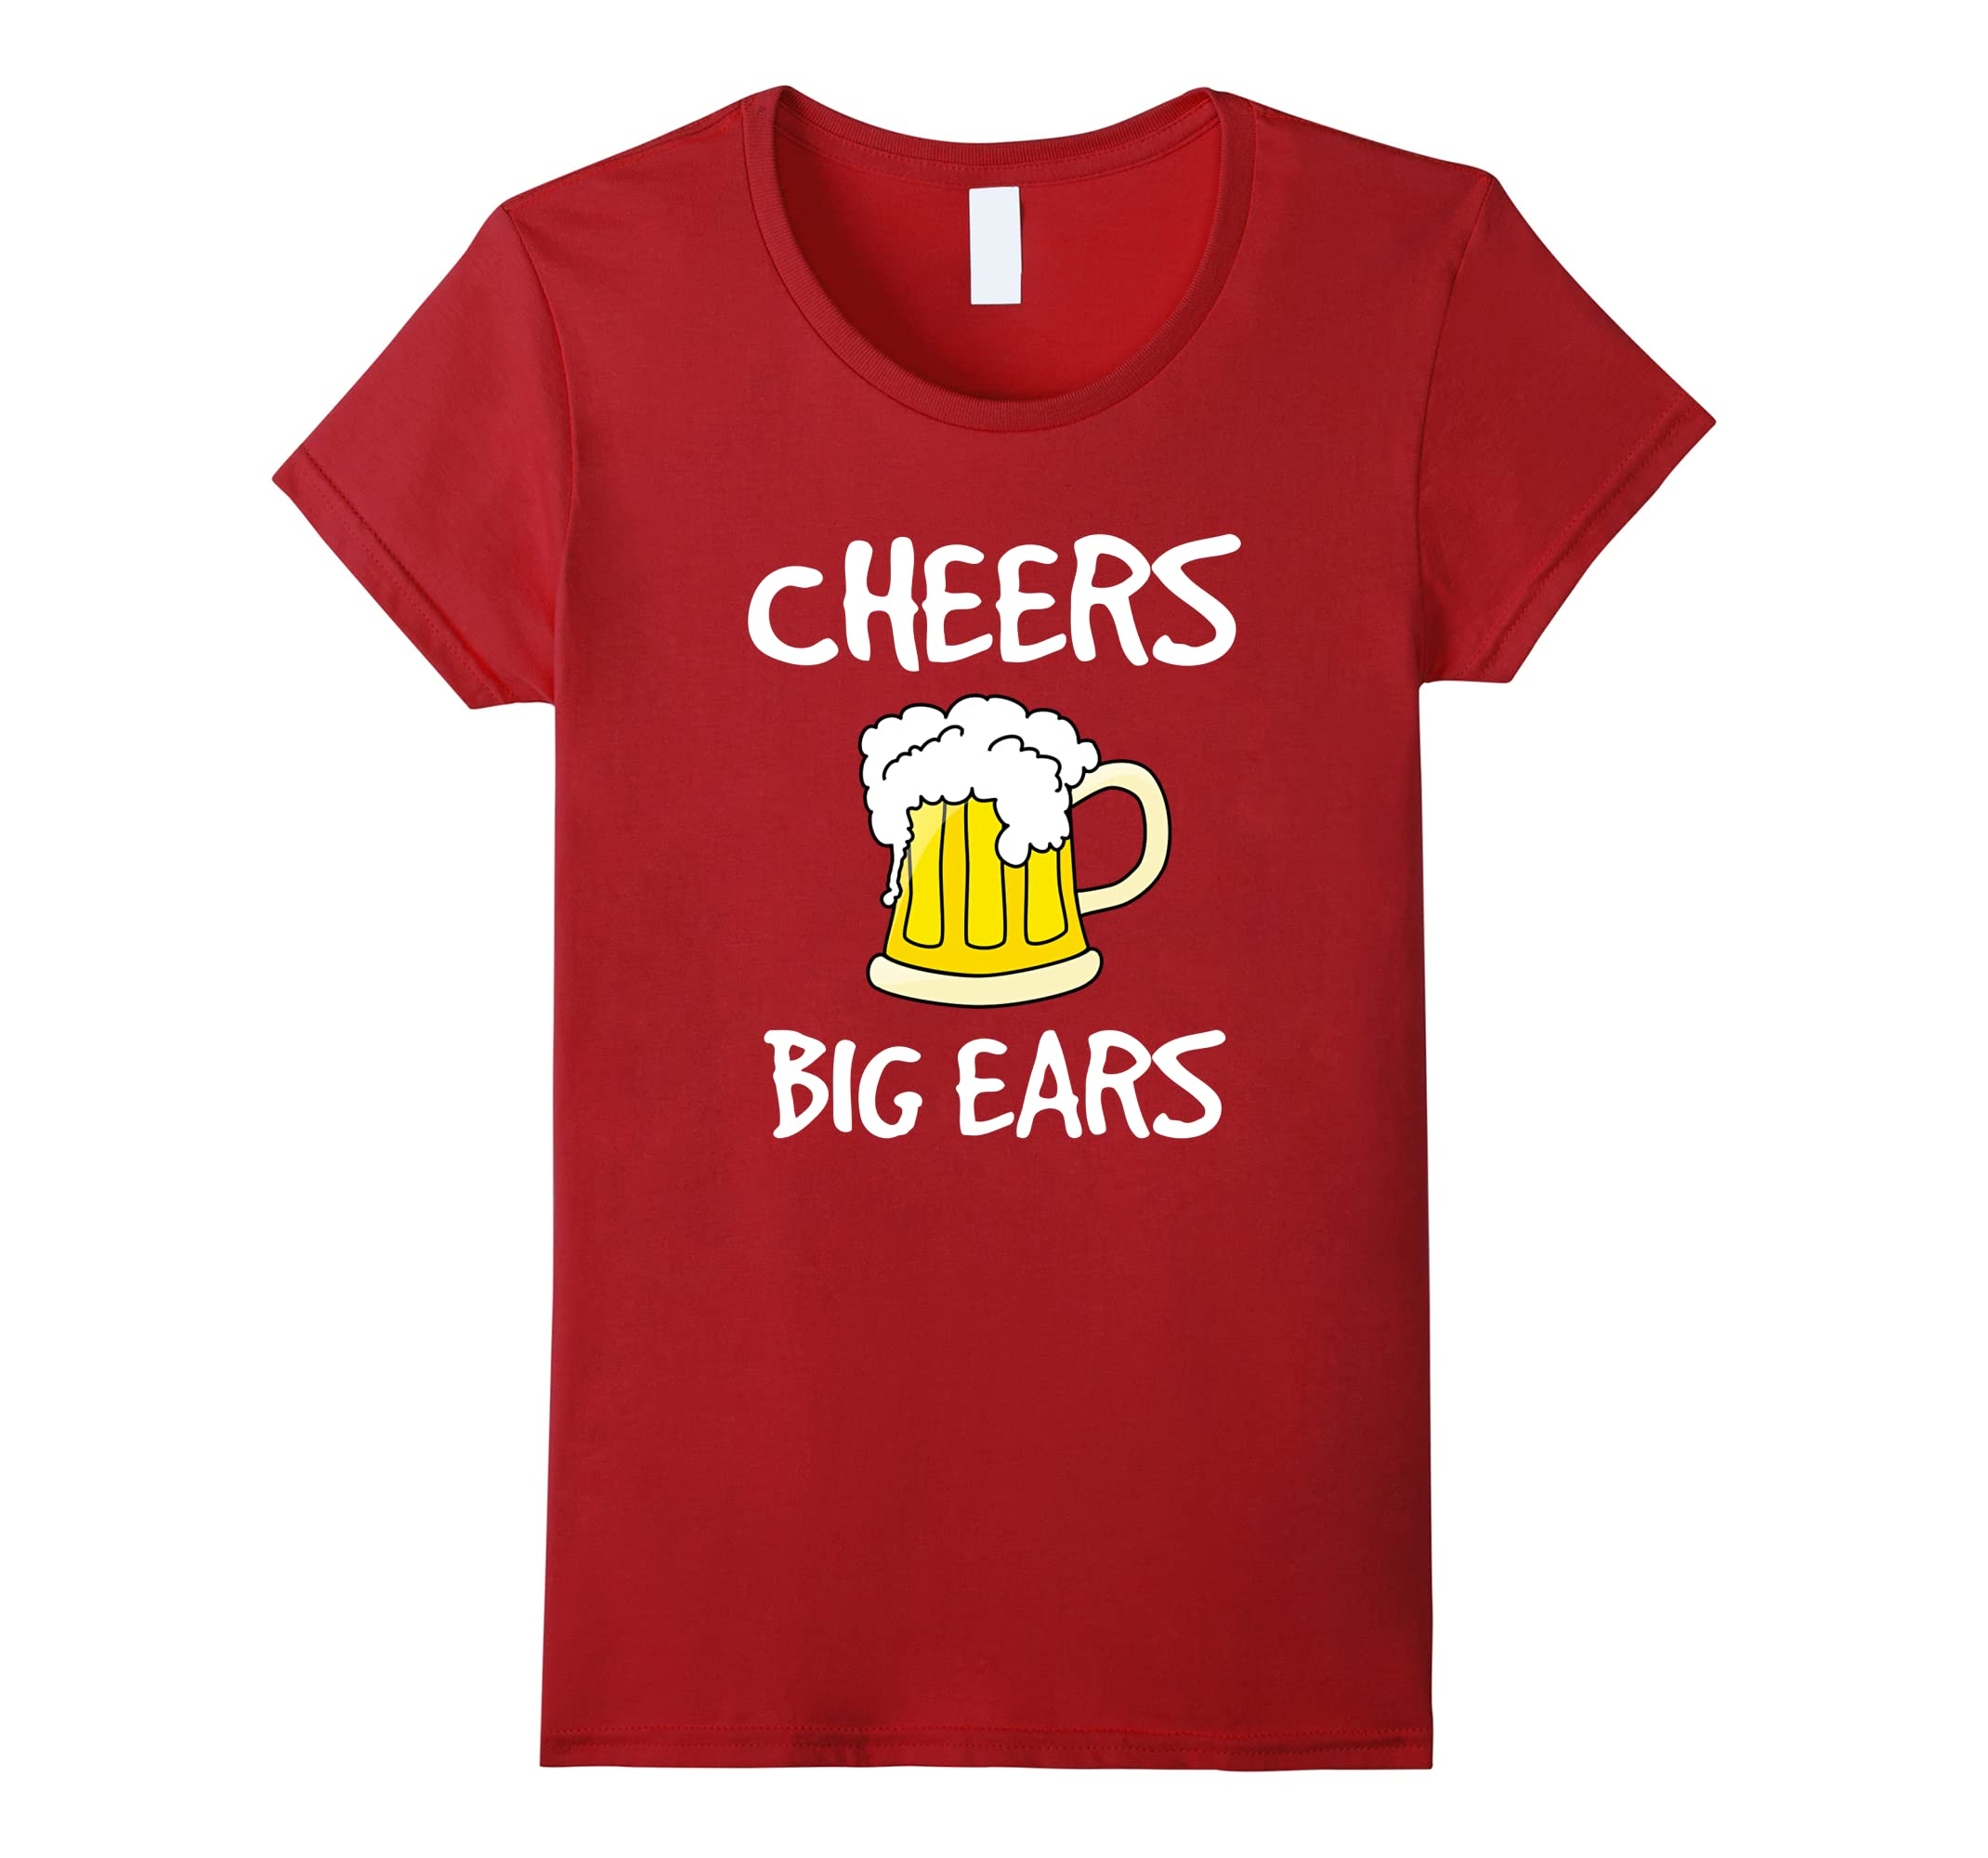 Cheers Big Ears Funny Beer Drinking Shirt